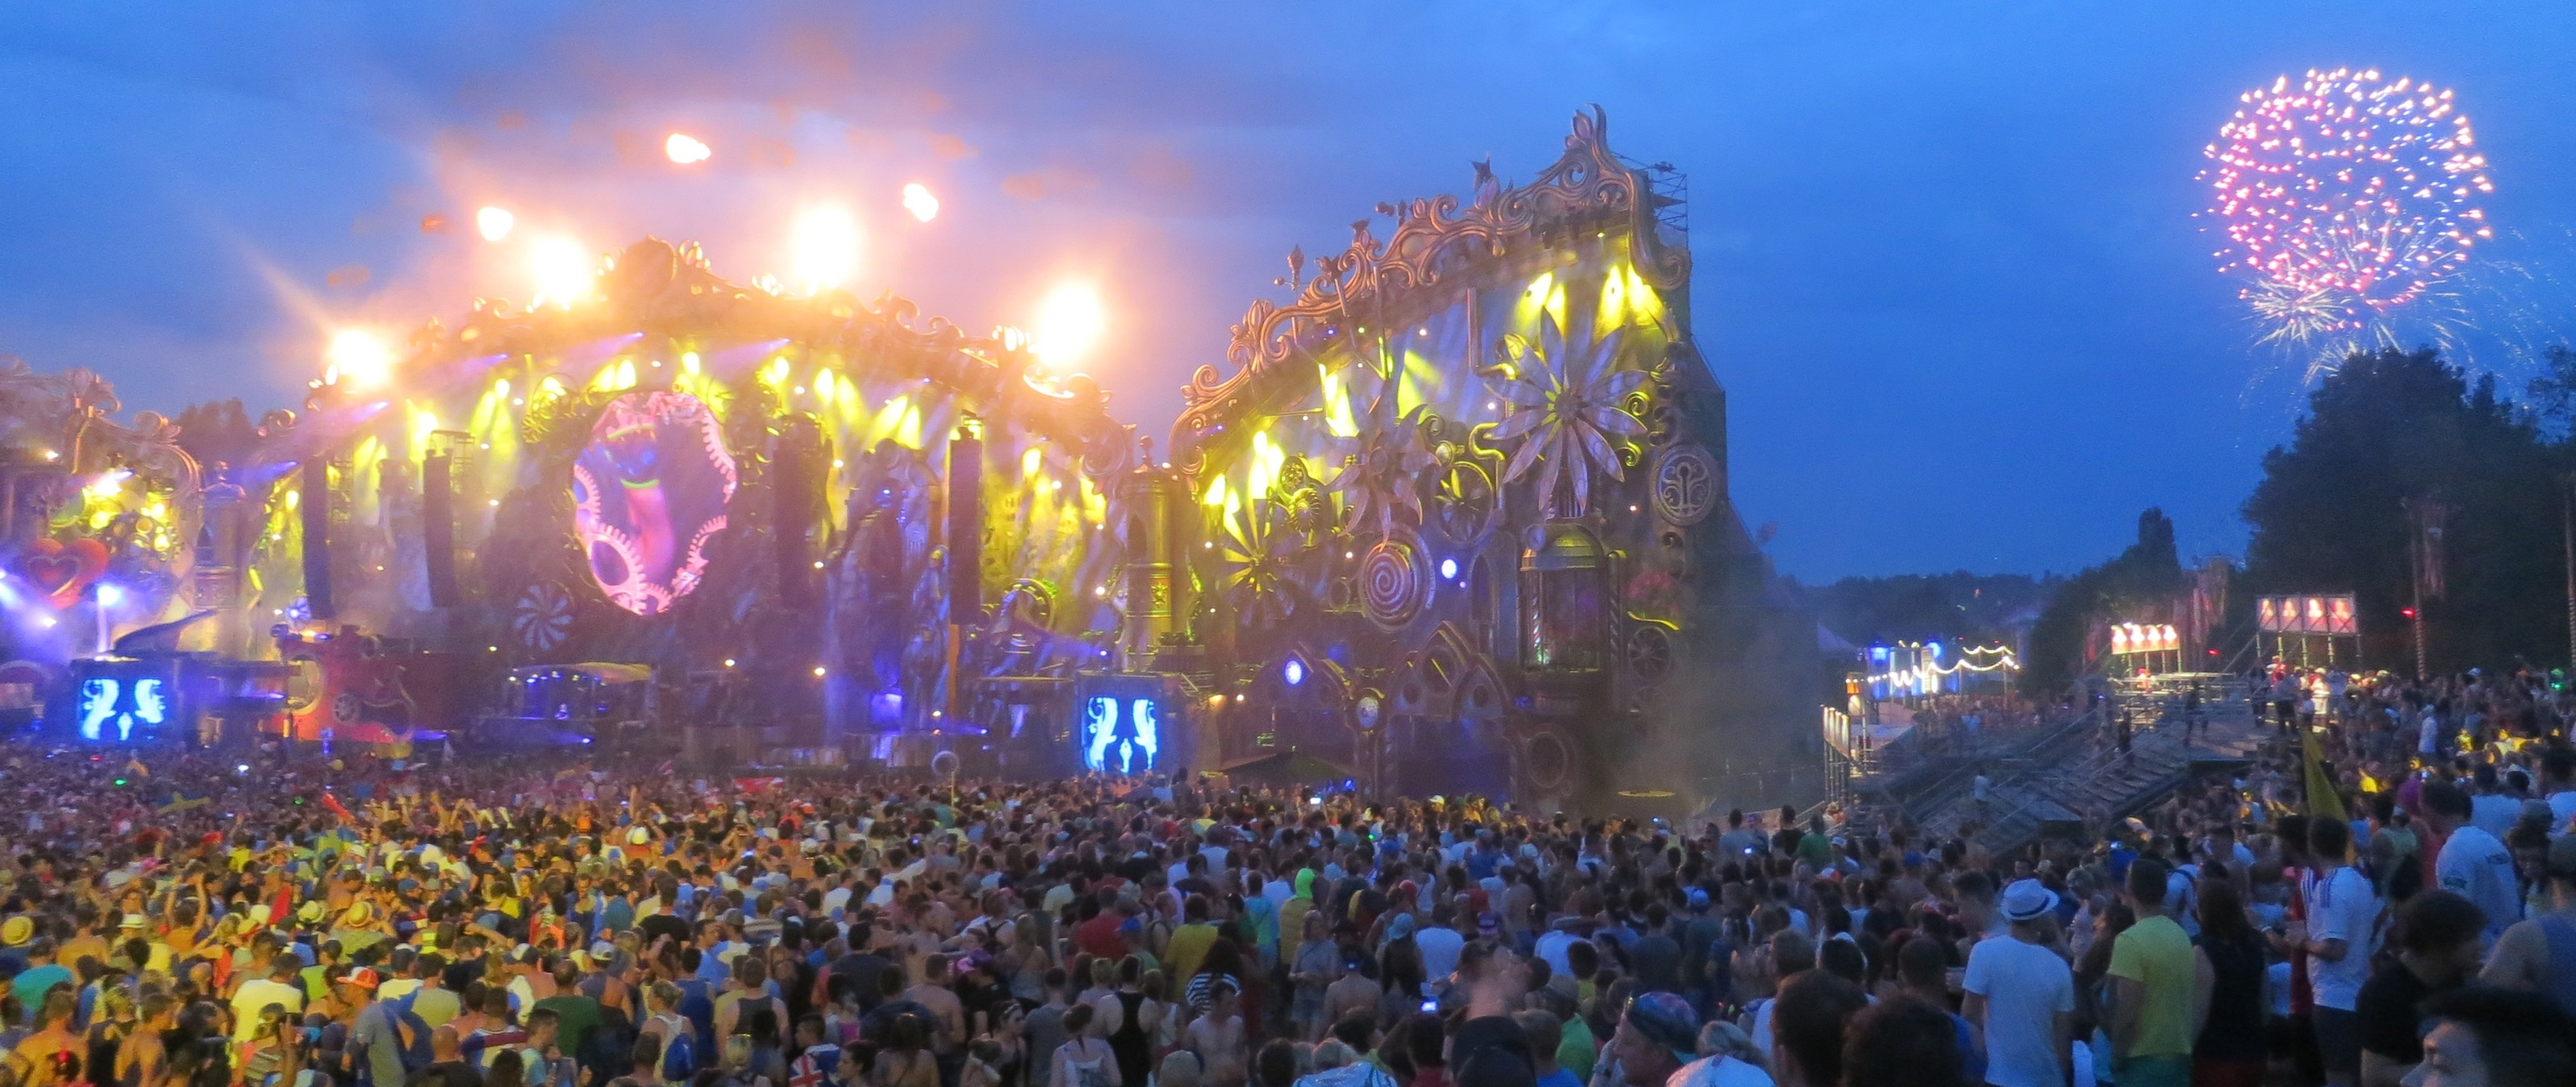 Mynn's 15 Tips for First Timers at Tomorrowland - She Walks